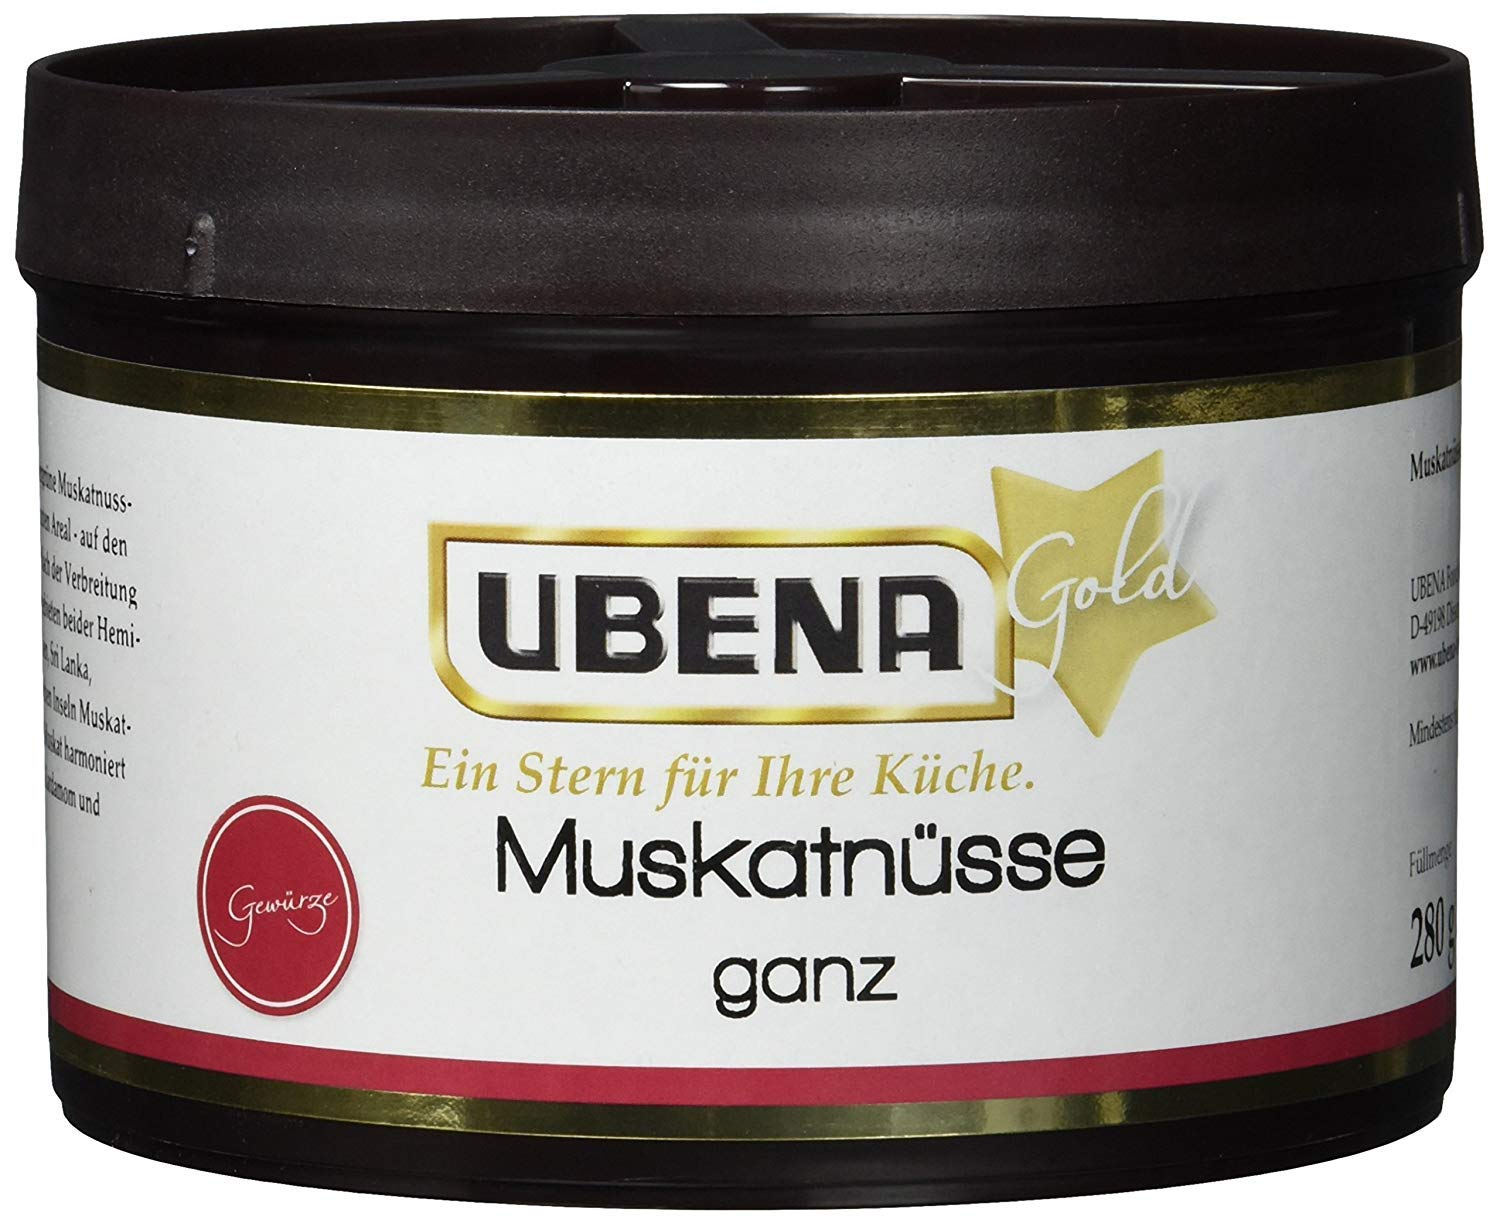 Ubena Whole nutmegs 280g